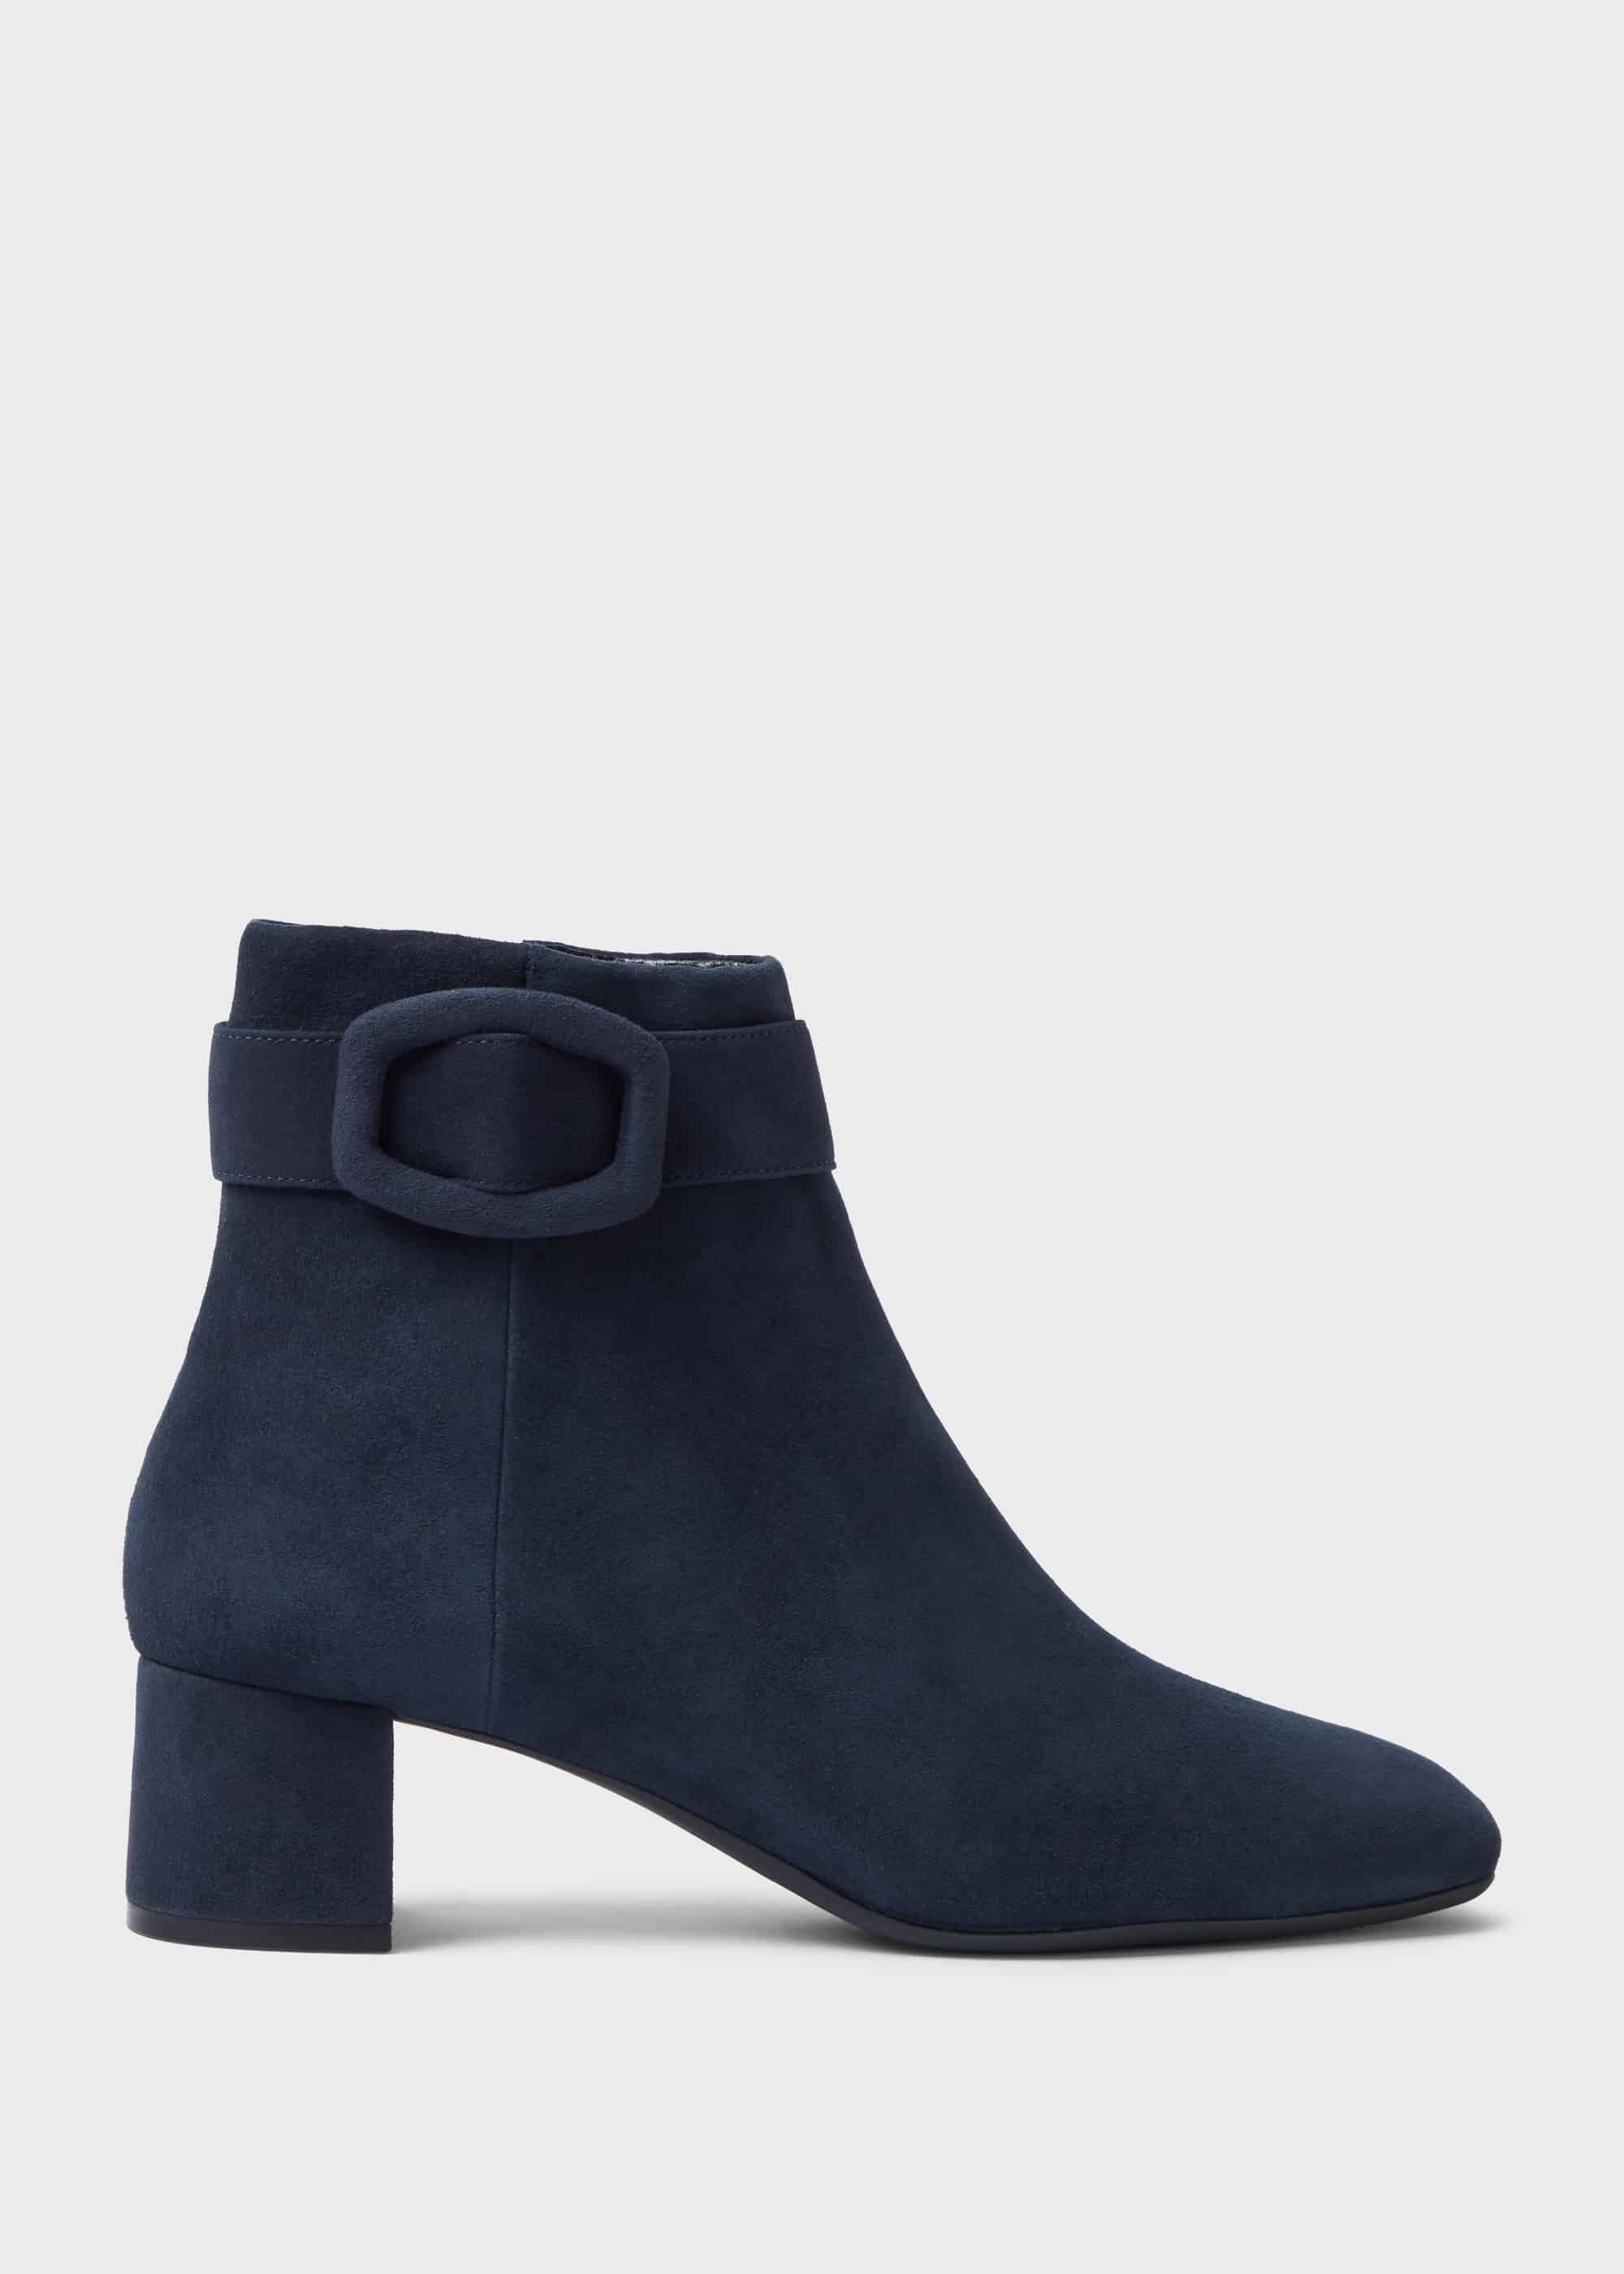 boots with block heel ankle